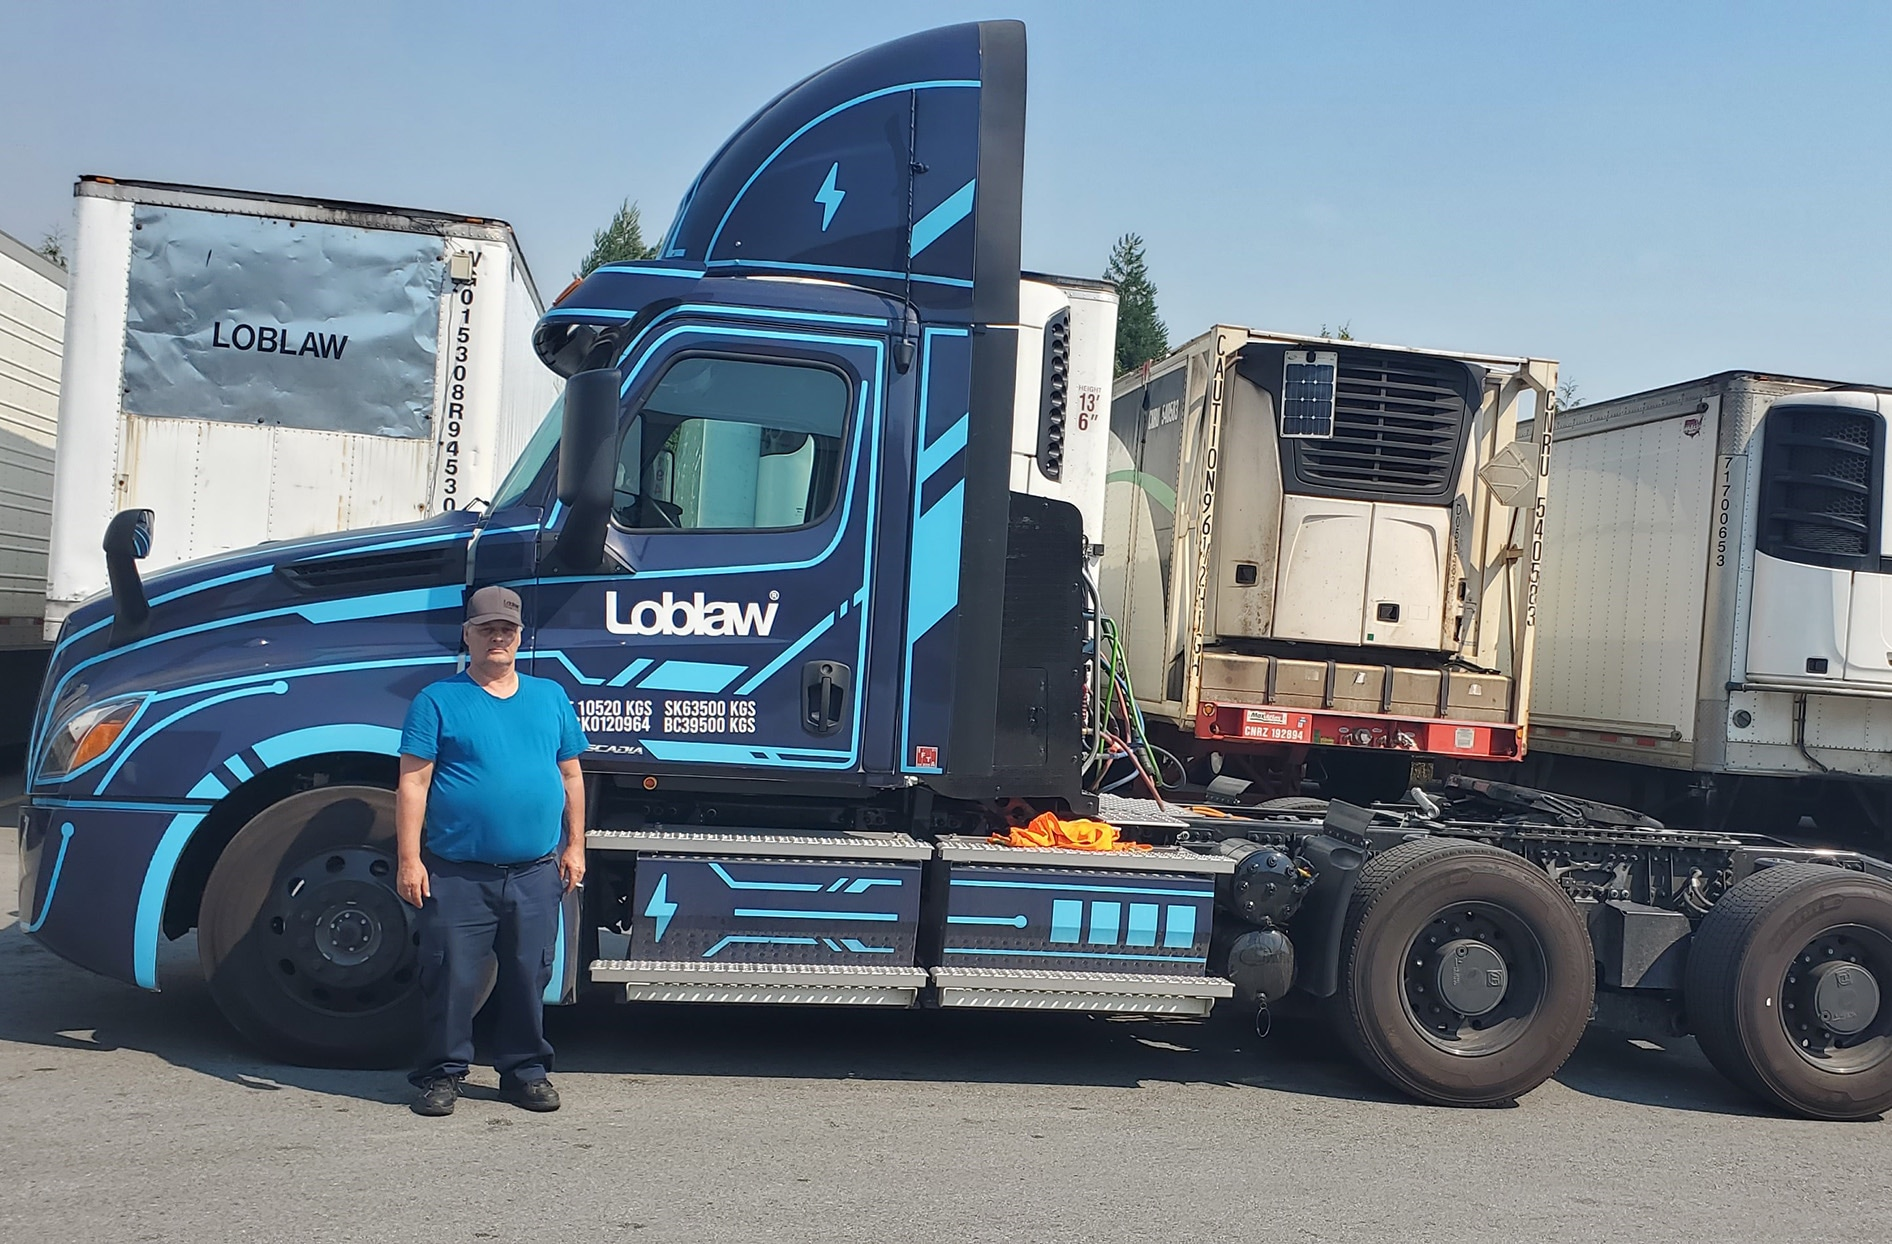 Richard stands in front of the Loblaw Freightliner eCascadia